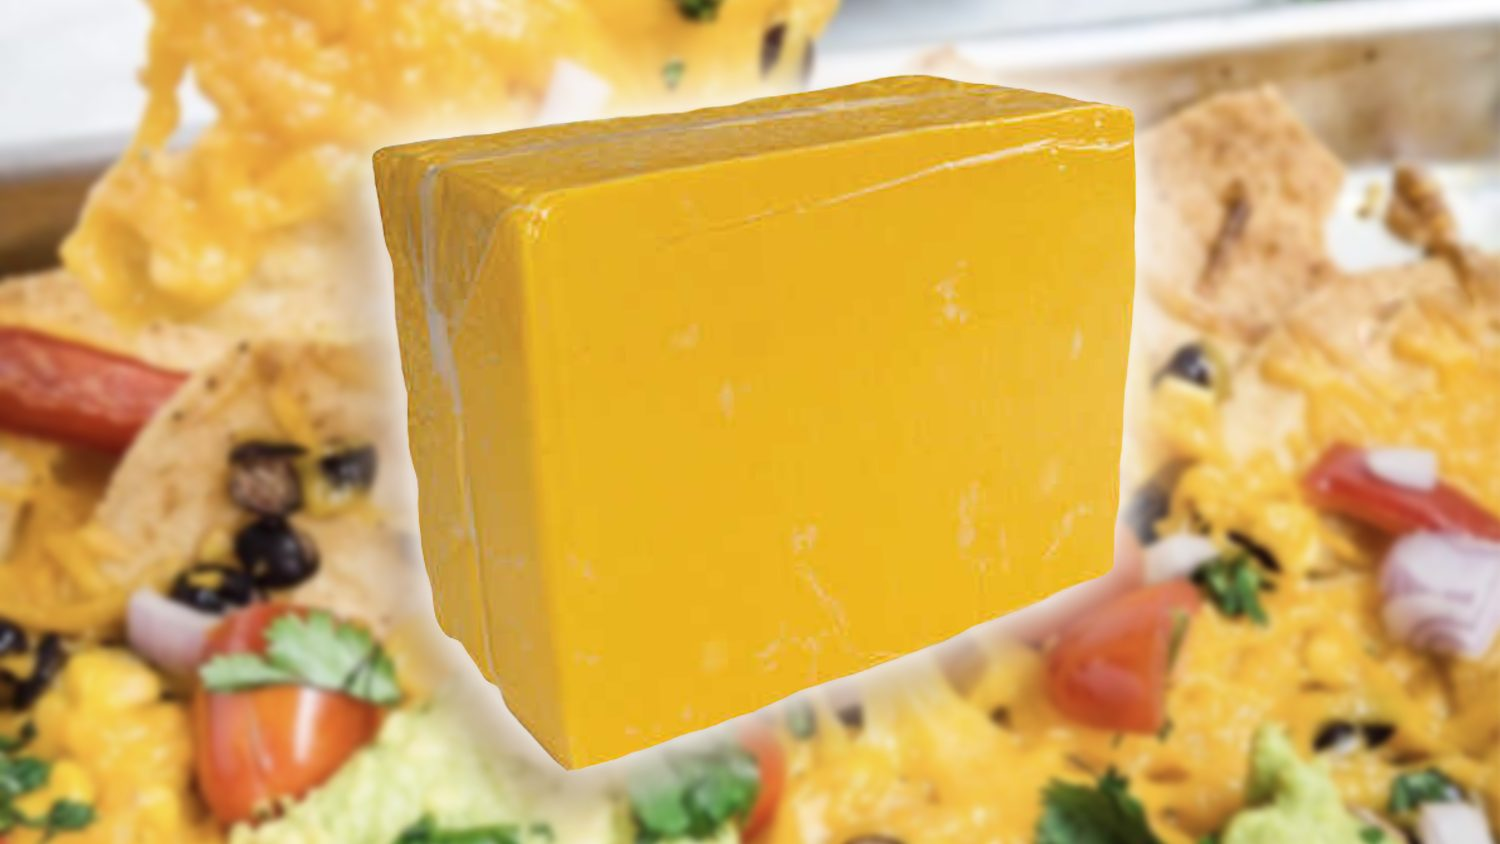 Yes, There Is a Giant 3-Pound of Vegan Nacho Cheese Waiting for You